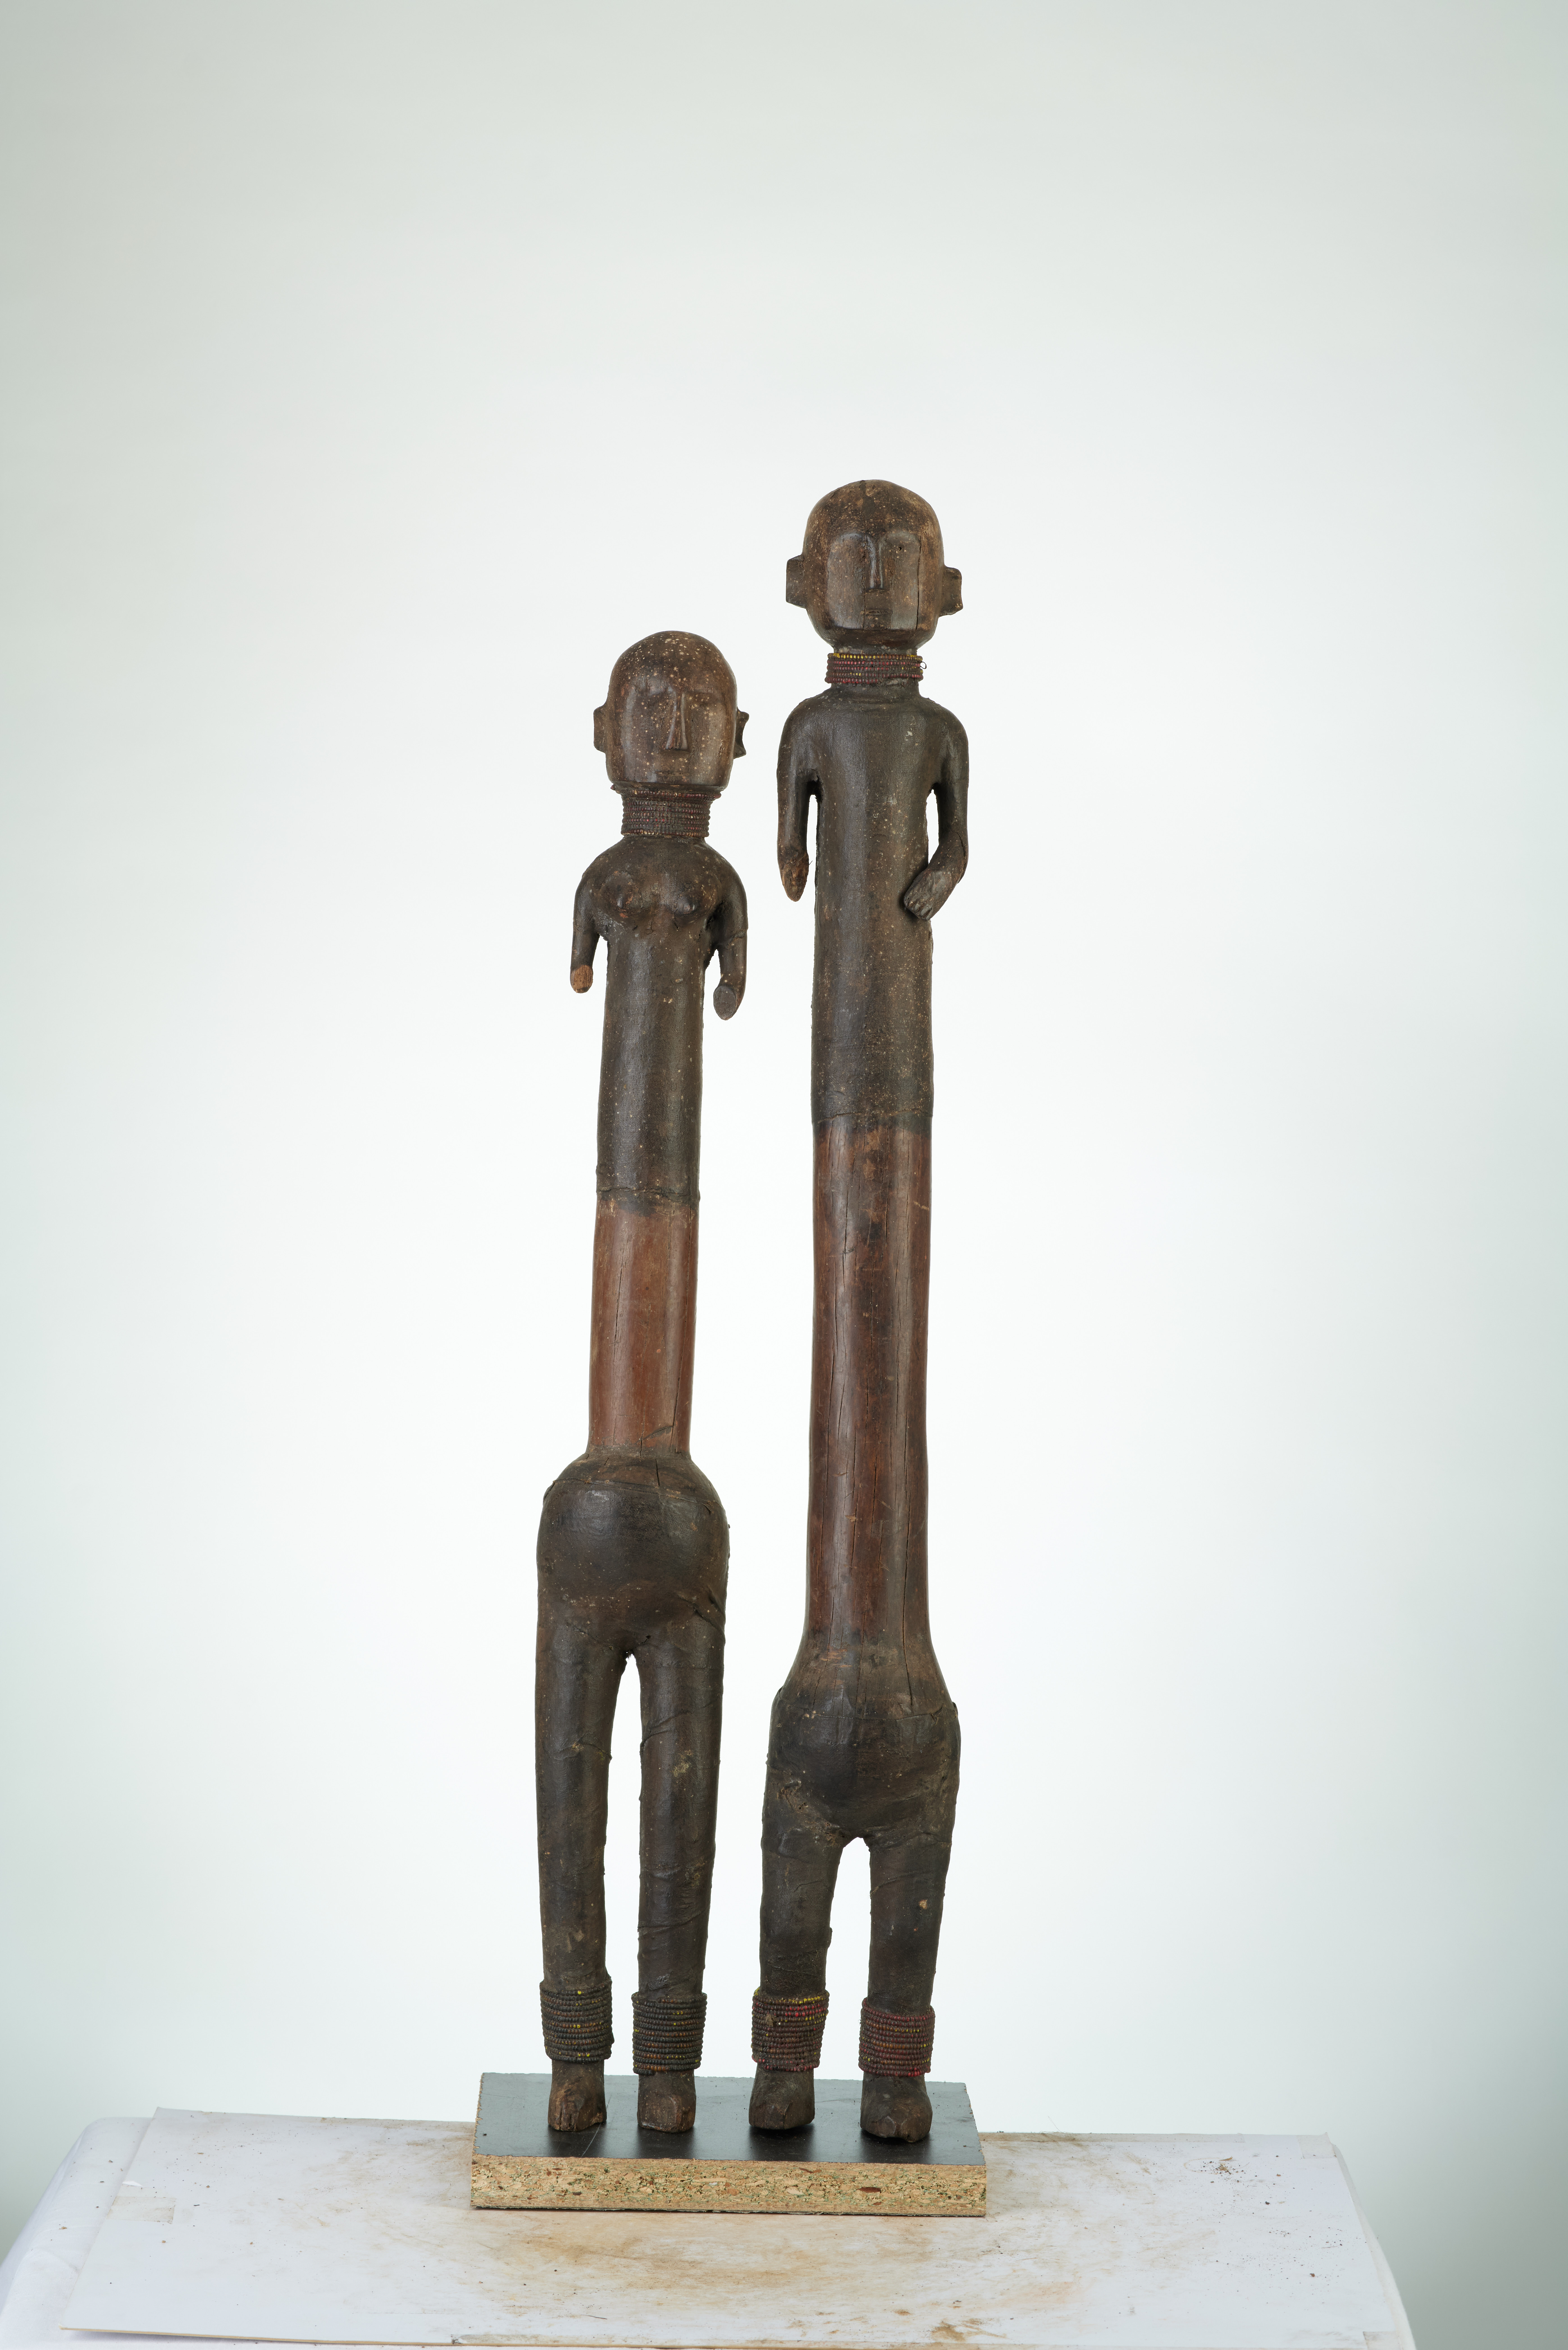 zalamo d afrique tanzanie statuette zalamo masque ancien africain zalamo art du tanzanie. Black Bedroom Furniture Sets. Home Design Ideas